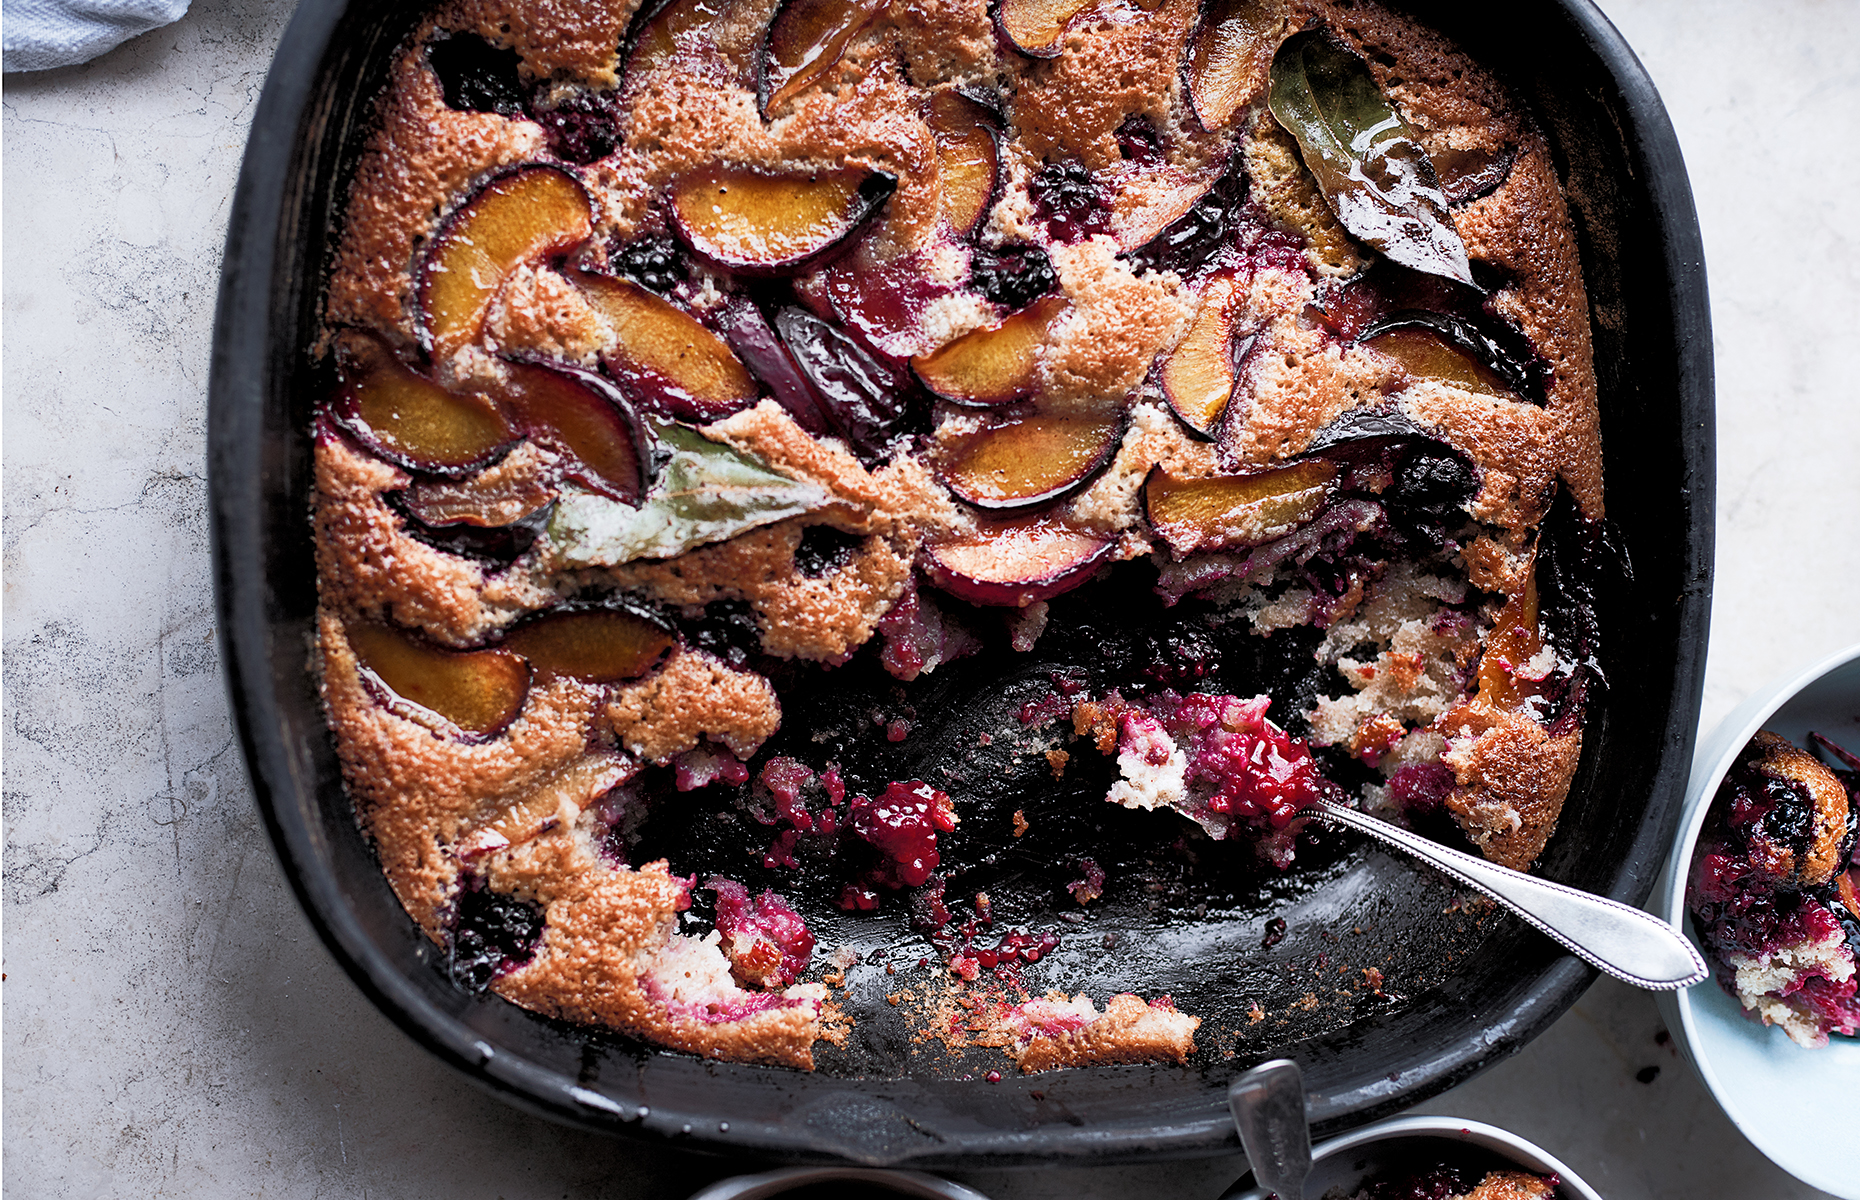 Plum, blackberry and bay friand bake